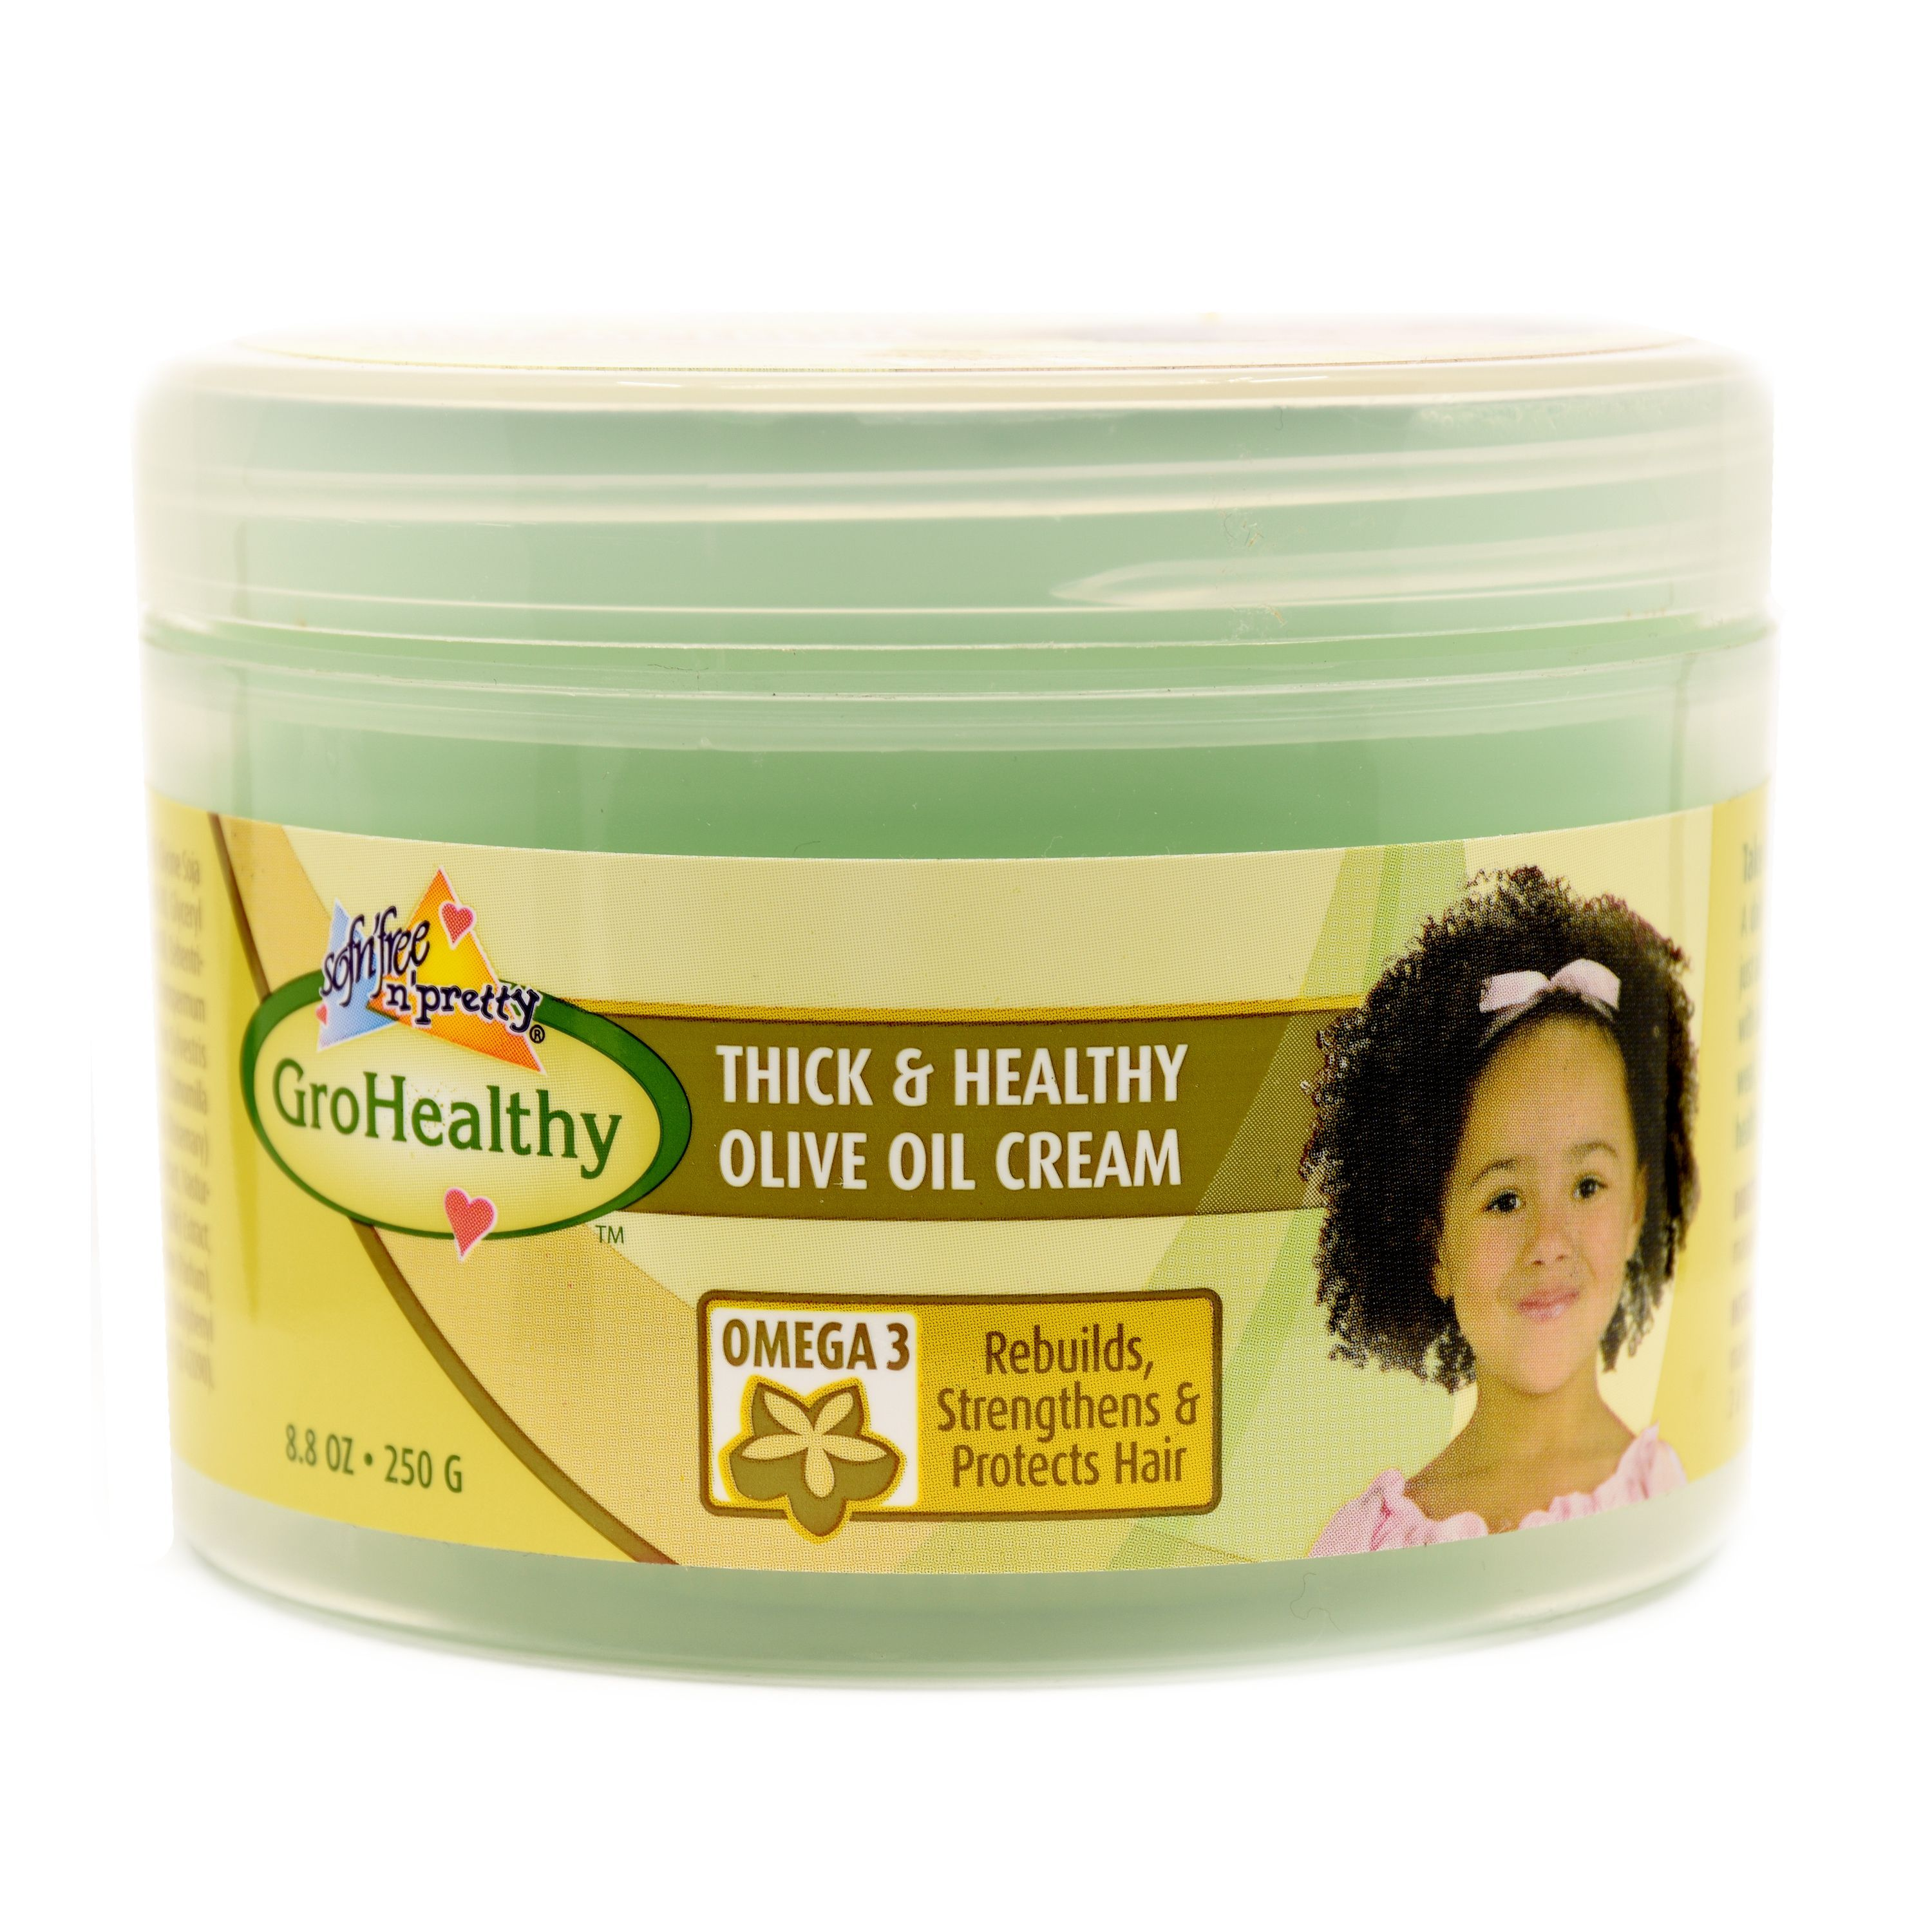 Sofn'Free N' Pretty GroHealthy Thick & Healthy Olive Oil Cream - 8.8oz